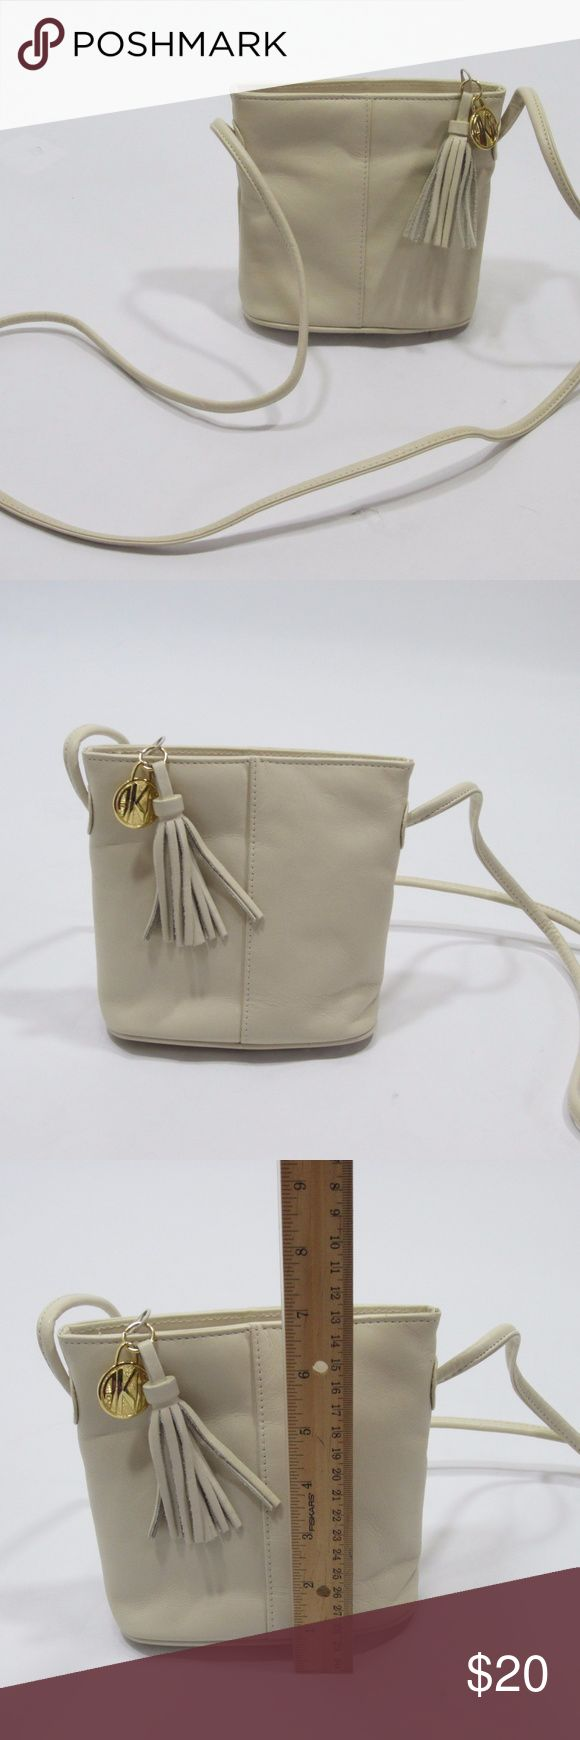 "VTG Anne Klein Cream Pleather Mini Bucket Bag *N23 Excellent vintage condition, a few spots on side and handle (pics 4 &5). Faux leather, simple elegant evening bag from a vintage Anne Klein collection, complete with gold hang tag and fringe tassel. [Size ""Extra small"" 6"" x 5"" x  2.5""] Cream/ off-white.   // No holds, trades, or modeling. Colors may vary on screen. Please use measurements. Offers welcome.   *Last characters in title is inventory number. Anne Klein Bags Mini Bags"